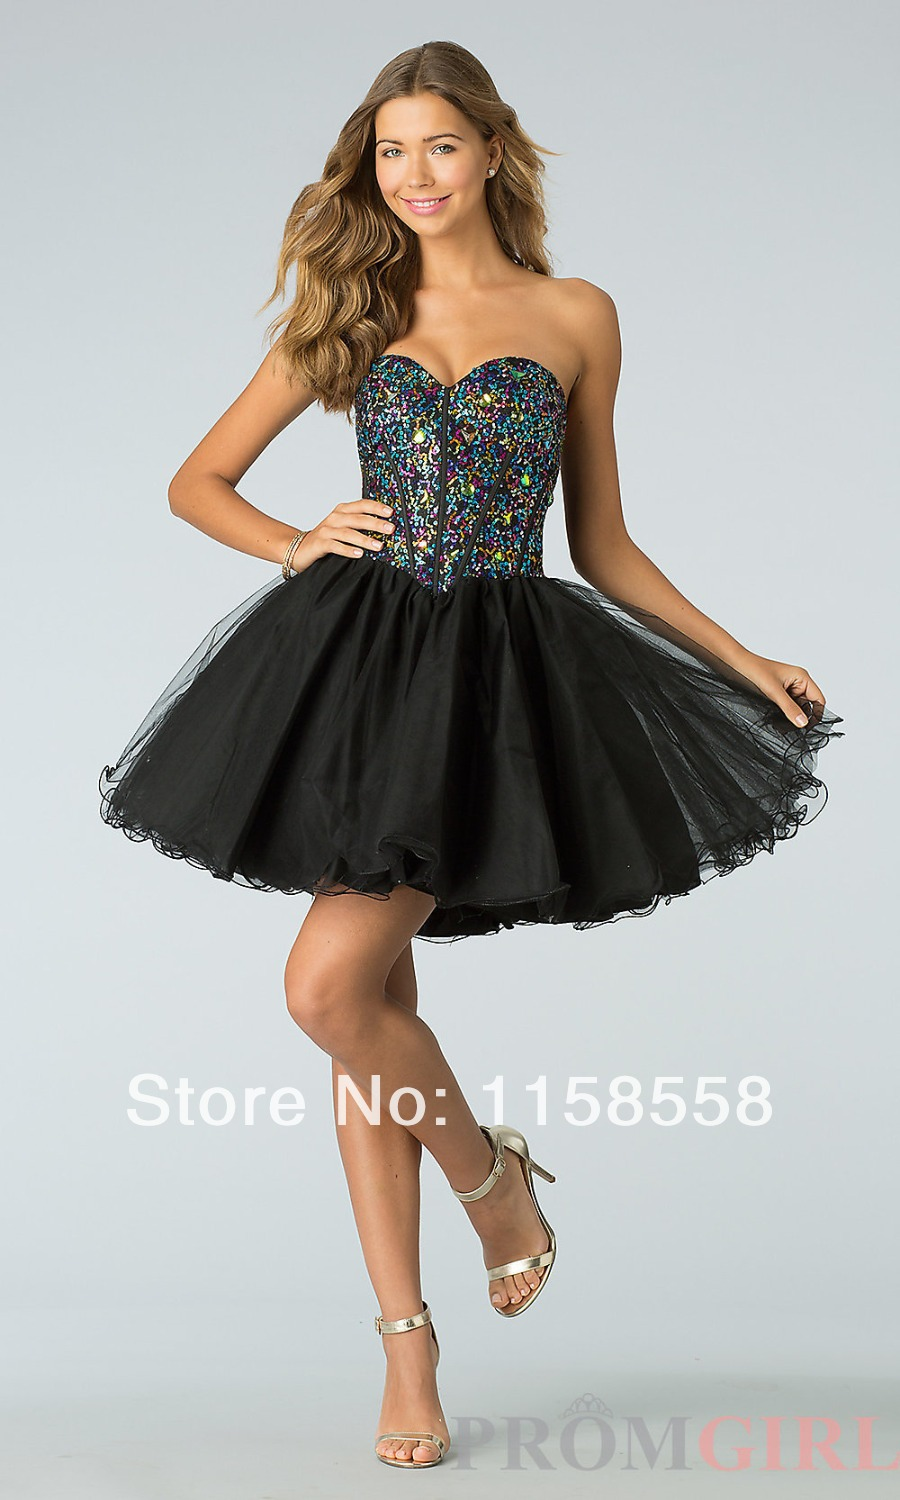 Cheap Formal Dresses Seattle - Plus Size Prom Dresses